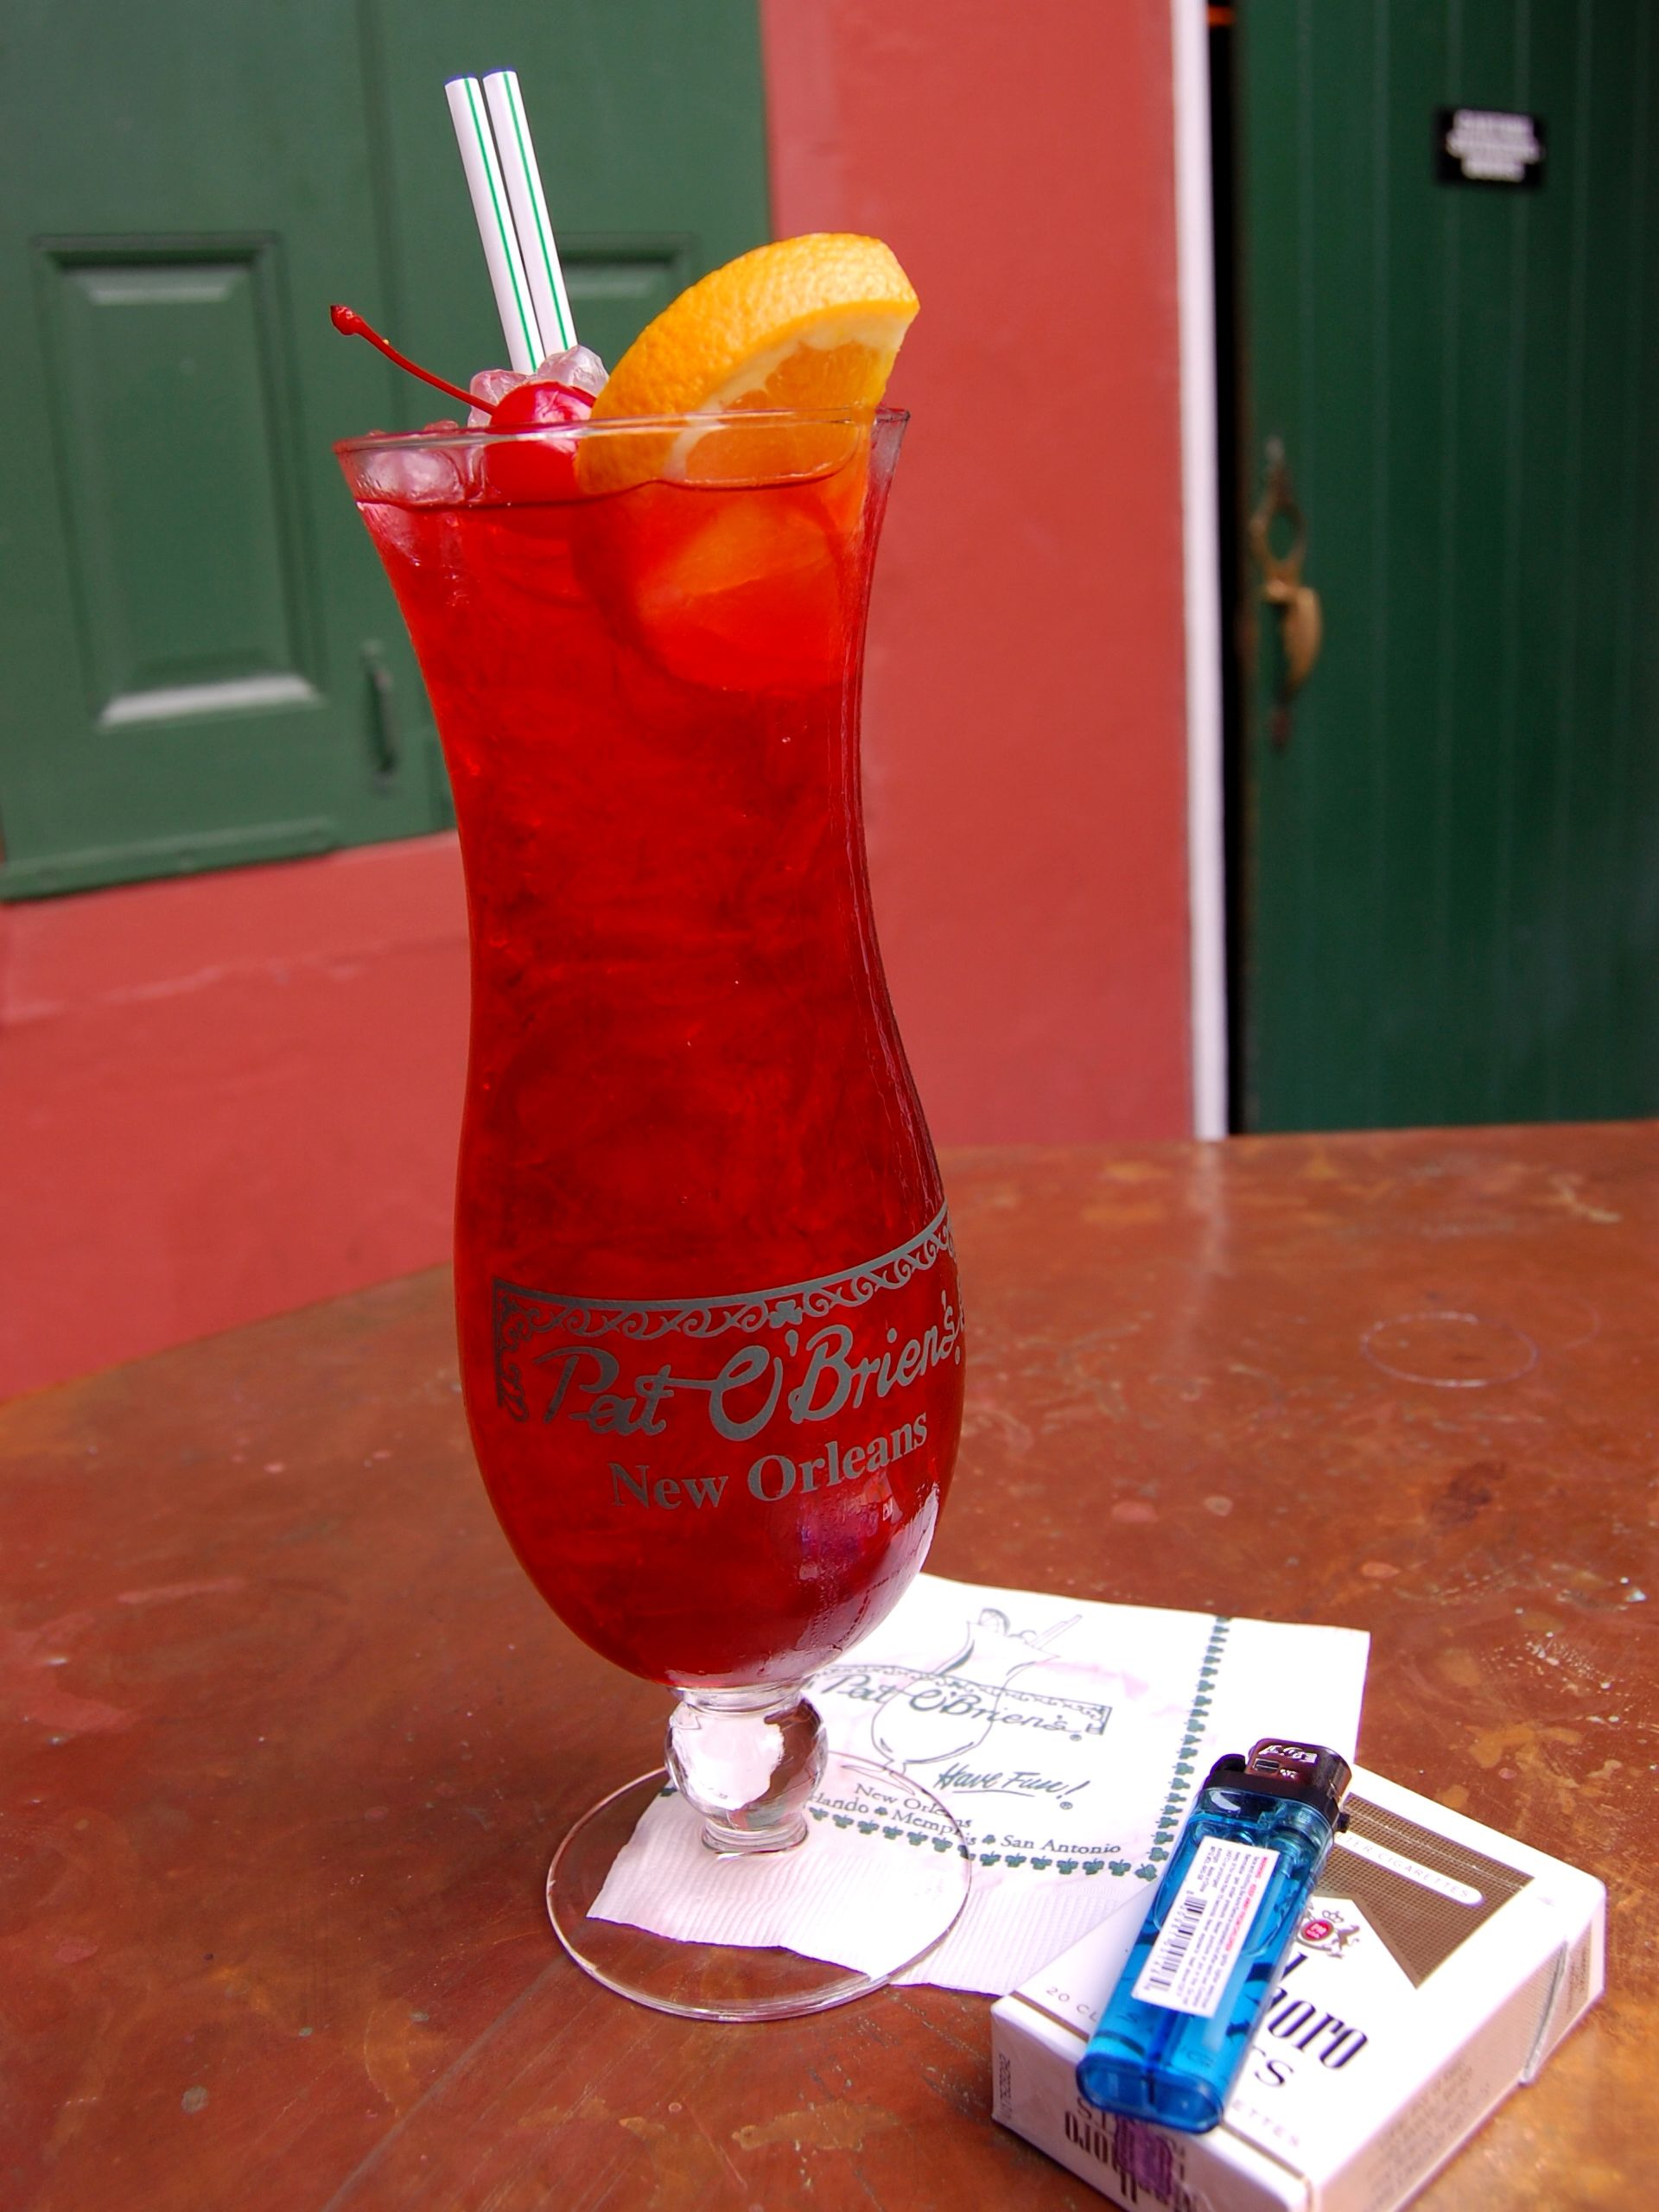 Singapore Sling Acceda A Nuestro Sitio Mucho Mas Informacion Https Storelatina Com Singapore Travelli Hurricane Drink Recipe Hurricane Drink Summer Drinks